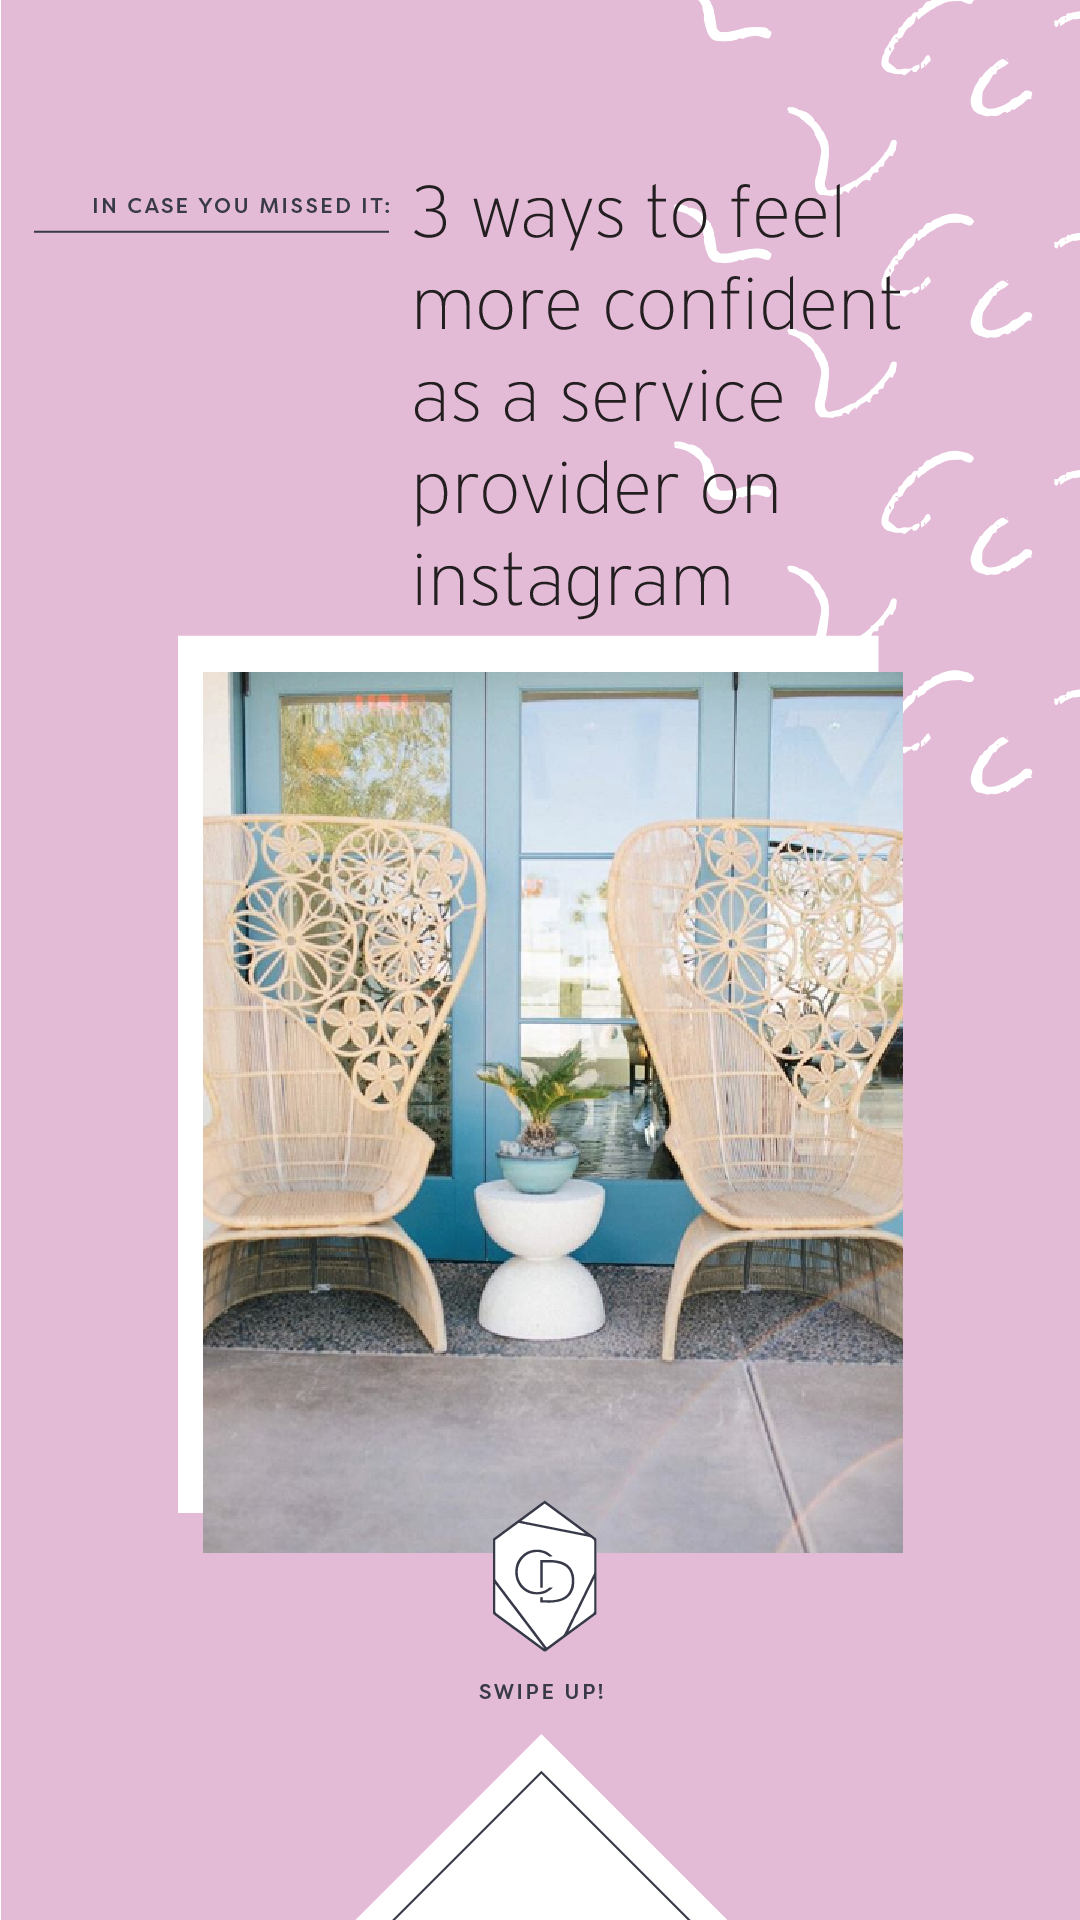 How to feel more confident as a service provider on Instagram. How to market and sell your services on Instagram. Use your Instagram to sell your services - find out the best tips and tricks to start selling more. #instagramtips #socialmediamarketing #socialmediatips